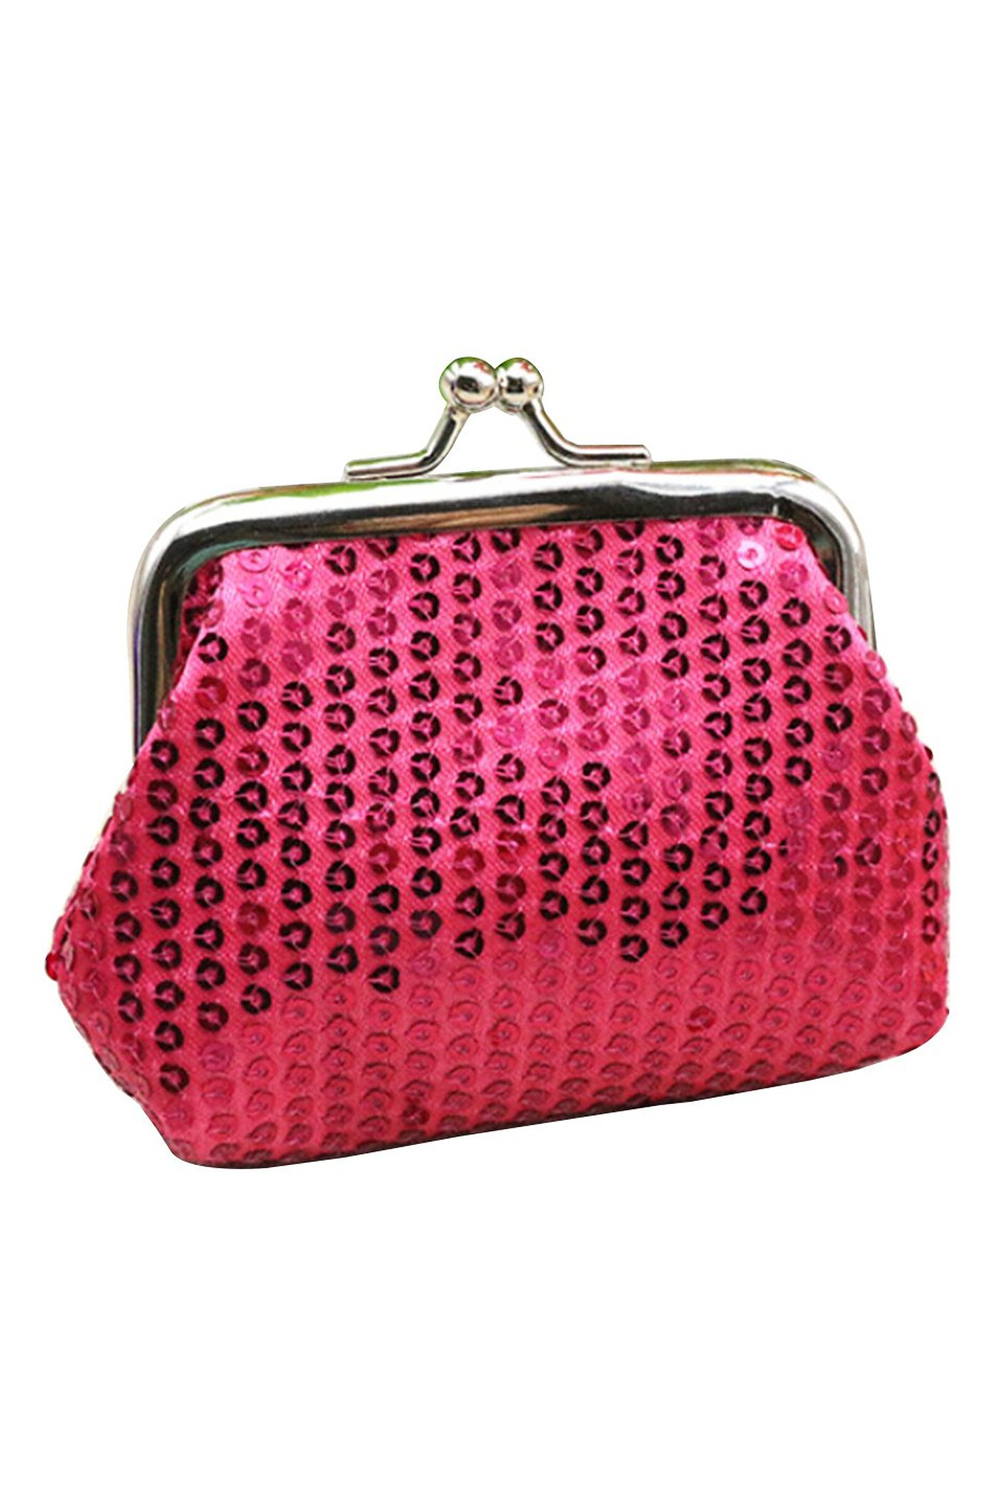 Le Meilleur Women S Sequins Coin Purse Buckle Mini Wallet Lw Ebay Ce Mois Ci